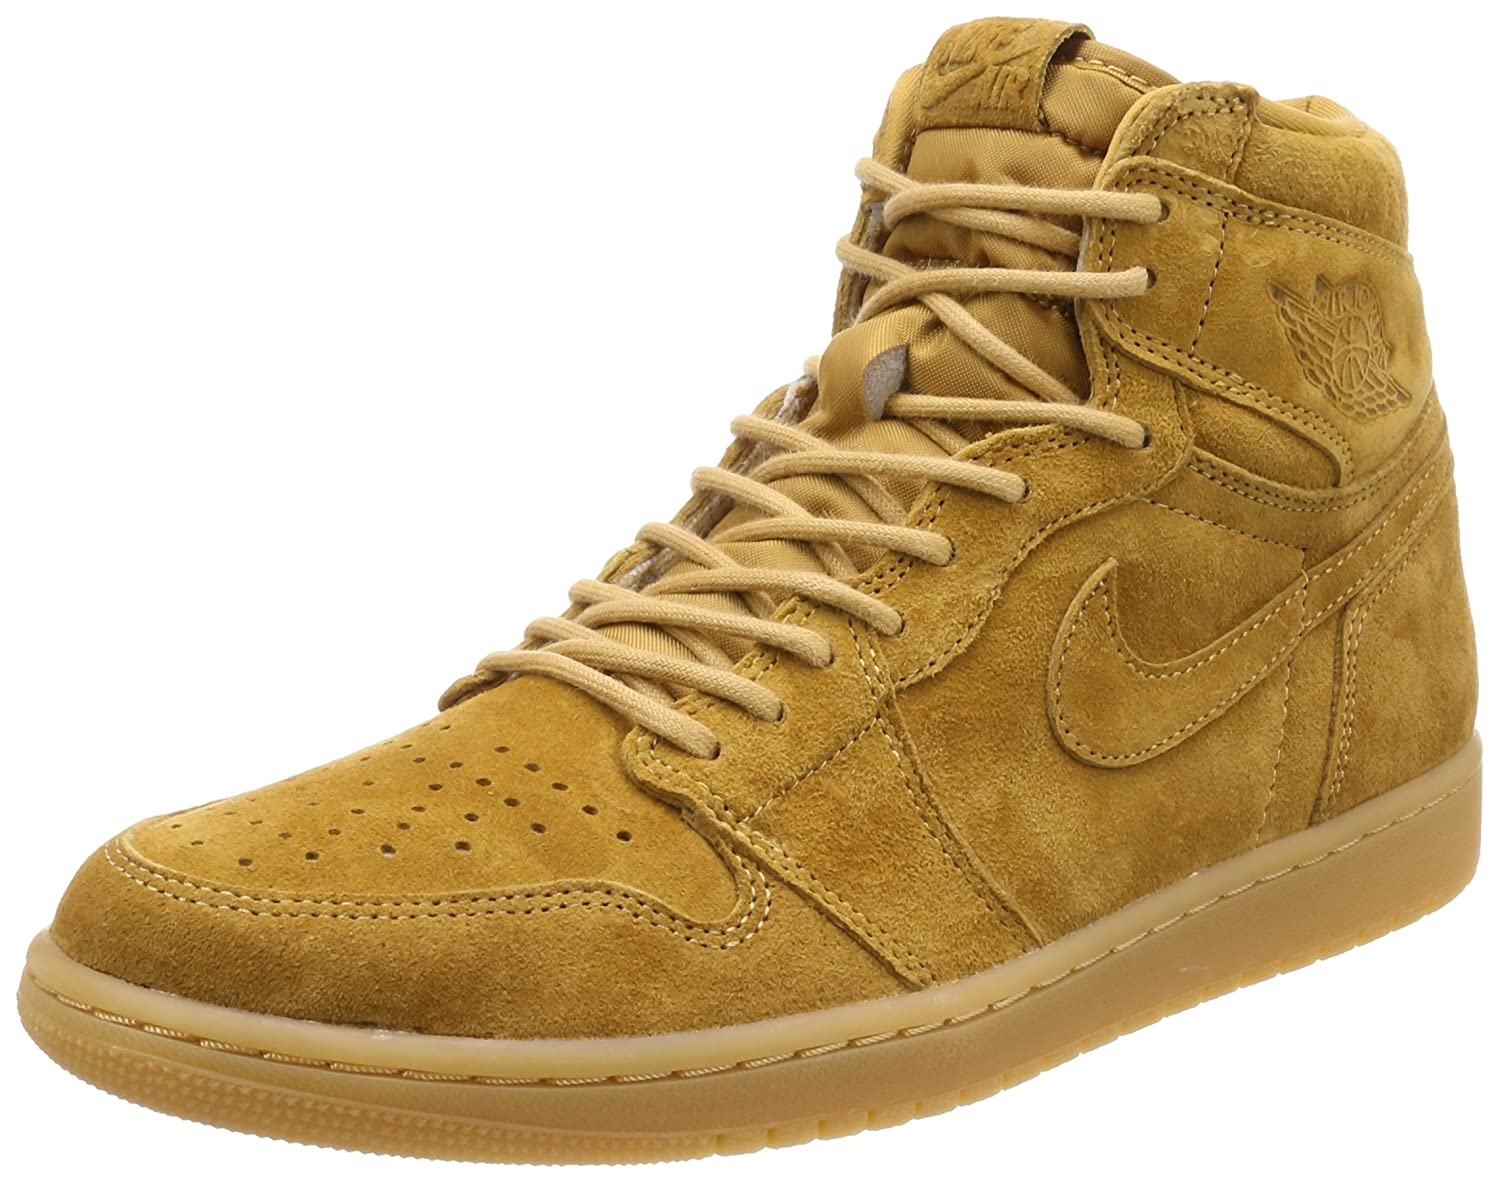 a34584593a77 Amazon.com  Nike Air Jordan 1 I High Wheat 555088-710 US Size 8 ...